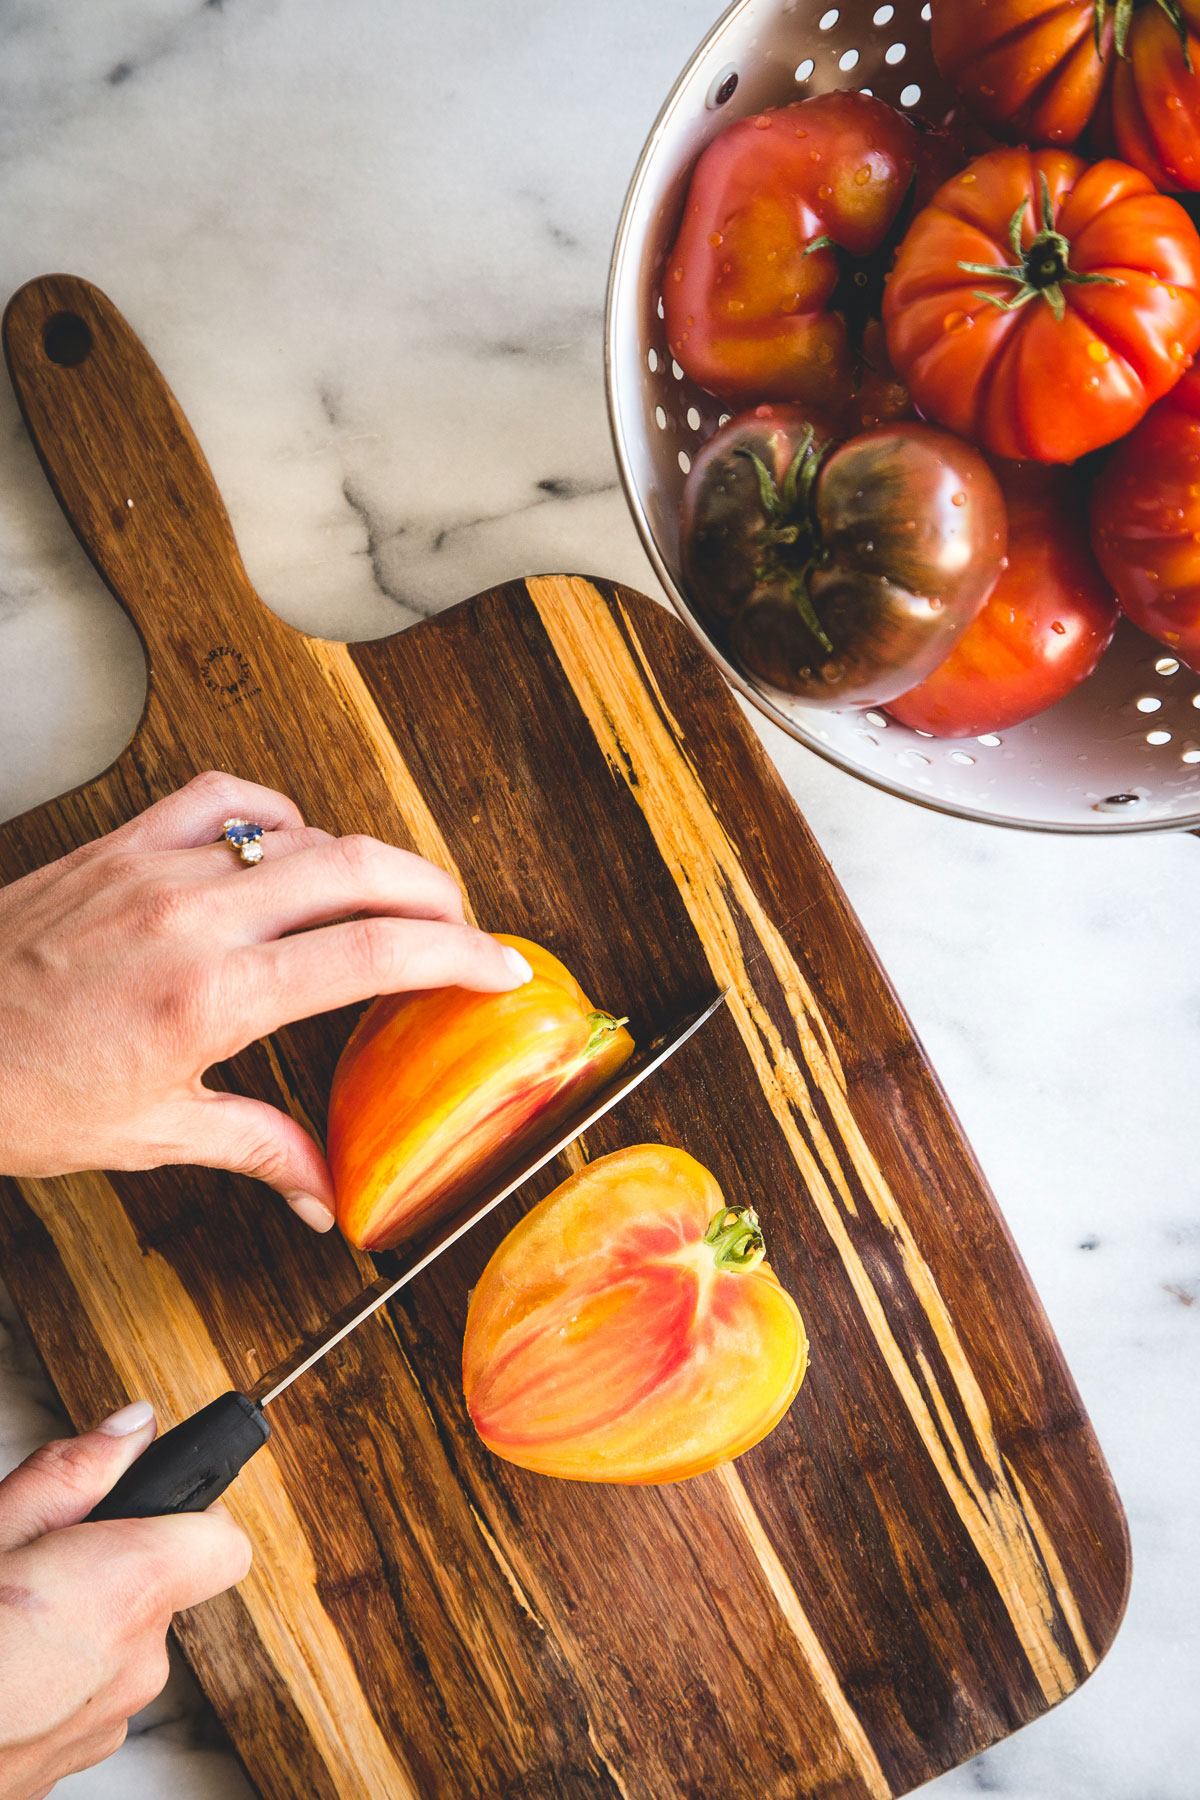 To highlight the heirloom tomato and let it speak for itself, we want to share this stunning heirloom tomato & mozzarella salad recipe with you! This bright summer salad is perfect for outdoor barbecues, a date night in or with a nice side of grilled beef.